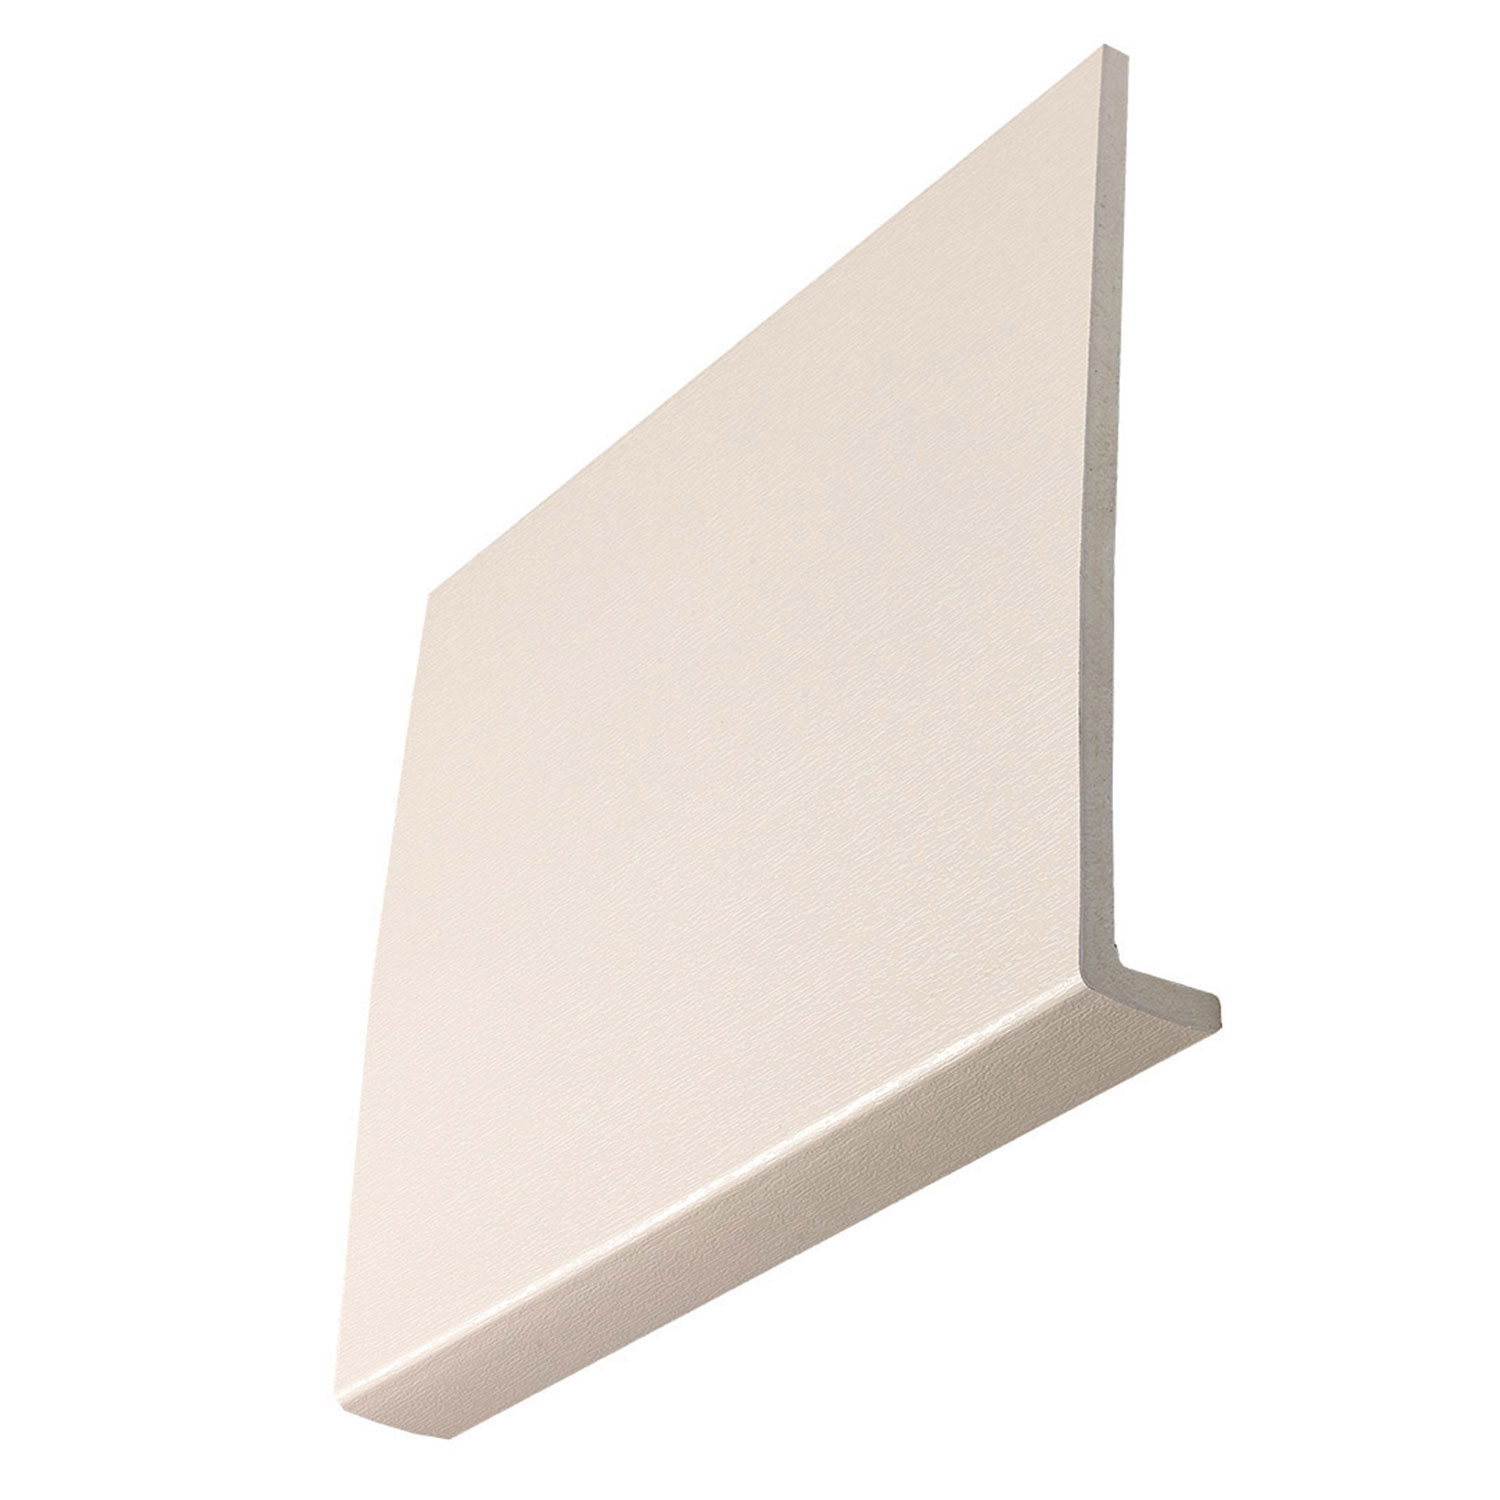 Fascia Board Cream Woodgrain Fascia Boards Woodgrain Fascias Fascias Soffits